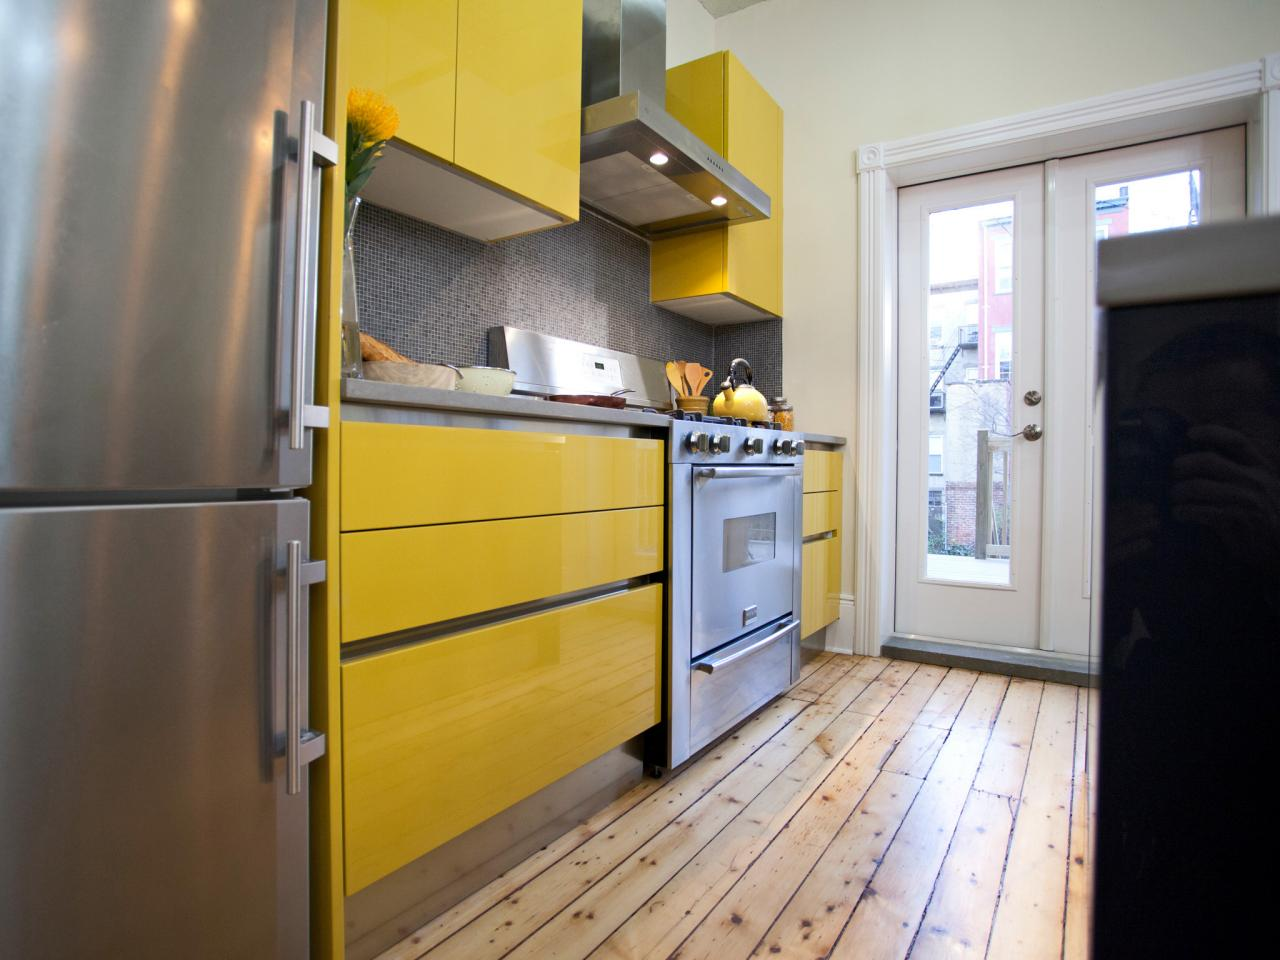 Yellow Kitchen Cabinets: Pictures, Ideas & Tips From HGTV | HGTV